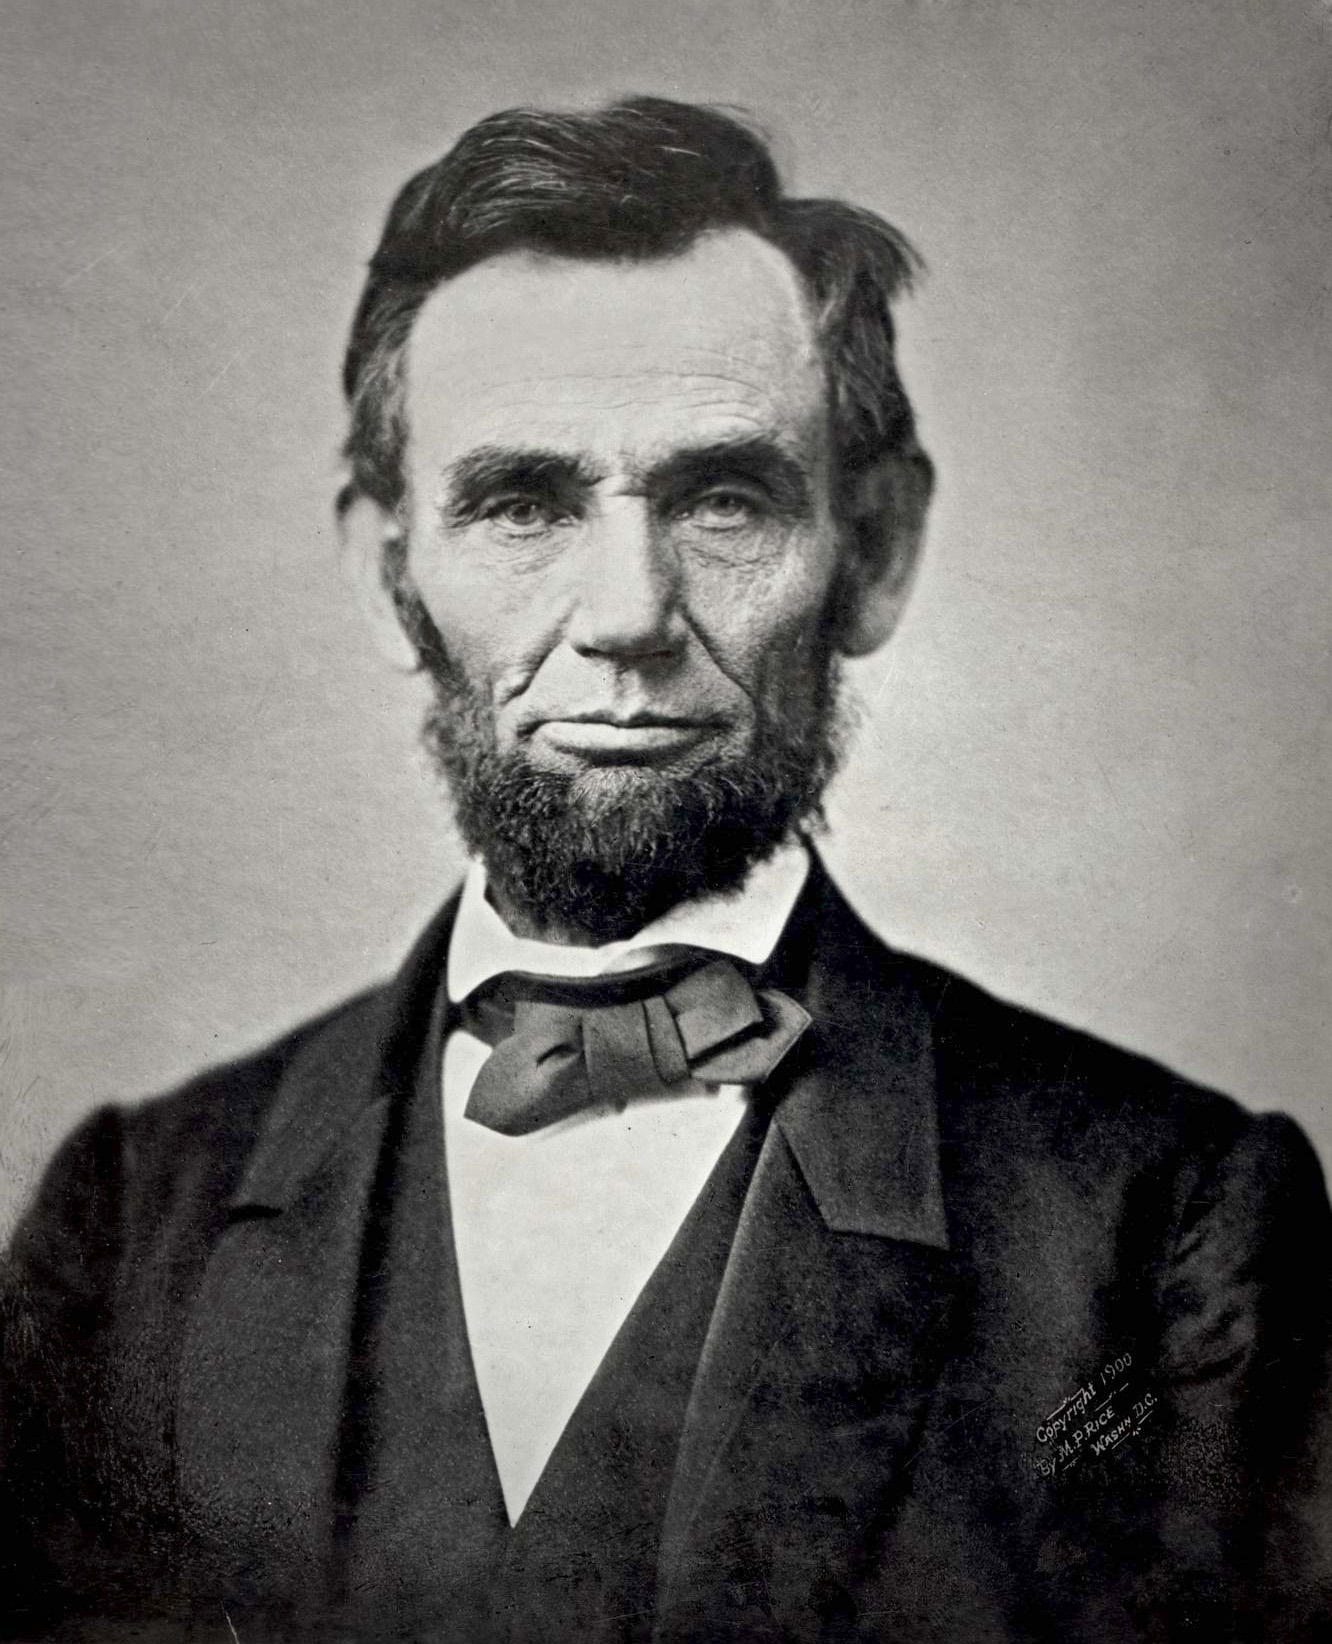 Lincoln Seattle: Mixed Reaction To Lincoln's Death On West Coast